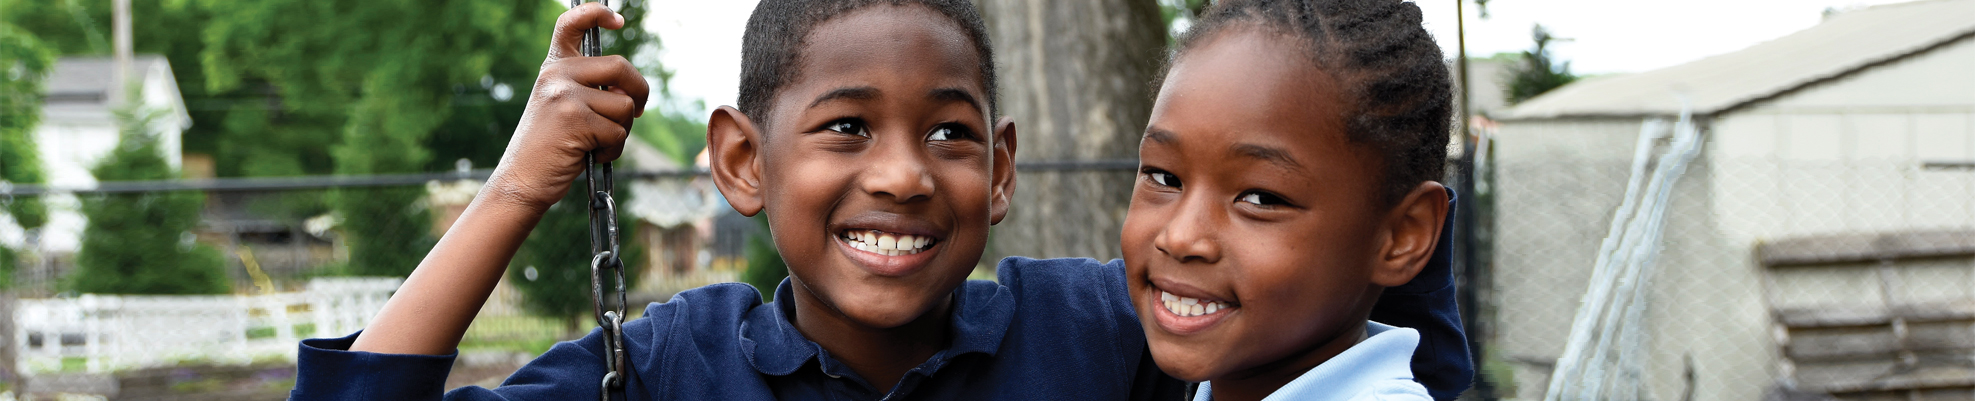 Hidden In Plain Sight: How You Are Helping Kids Cope With The Trauma Of Homelessness